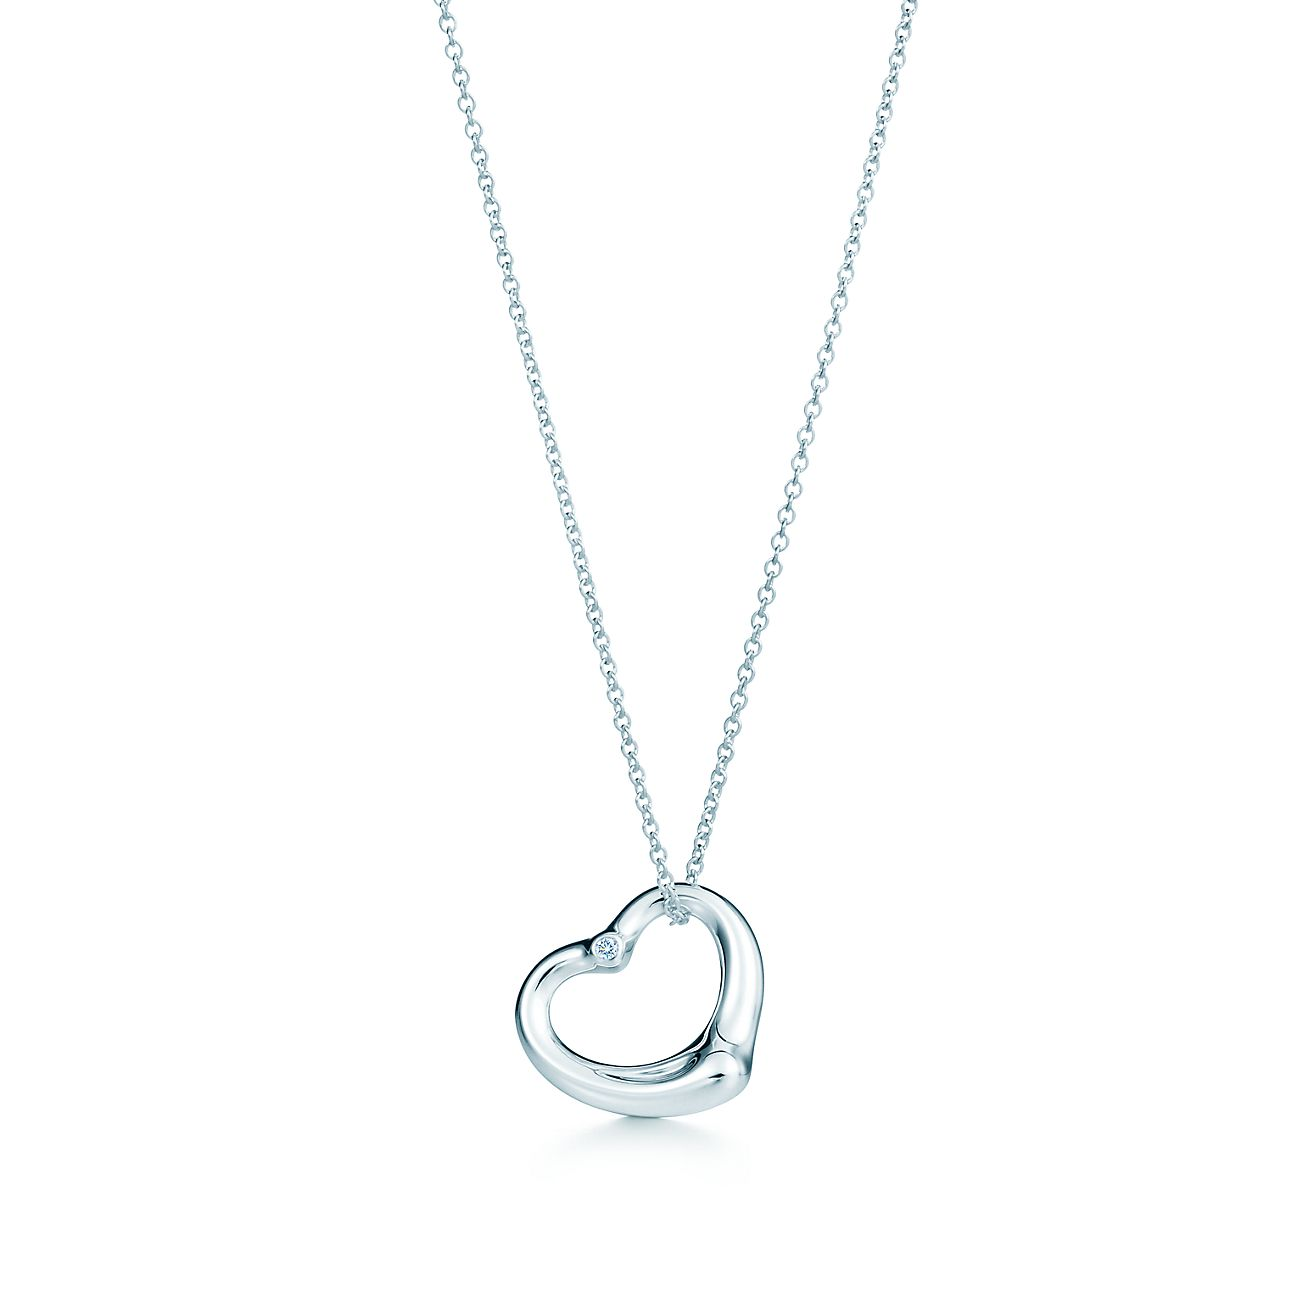 heart meyer open large necklace product pdp new jennifer barneys flexh necklacefront necklaces york pendant